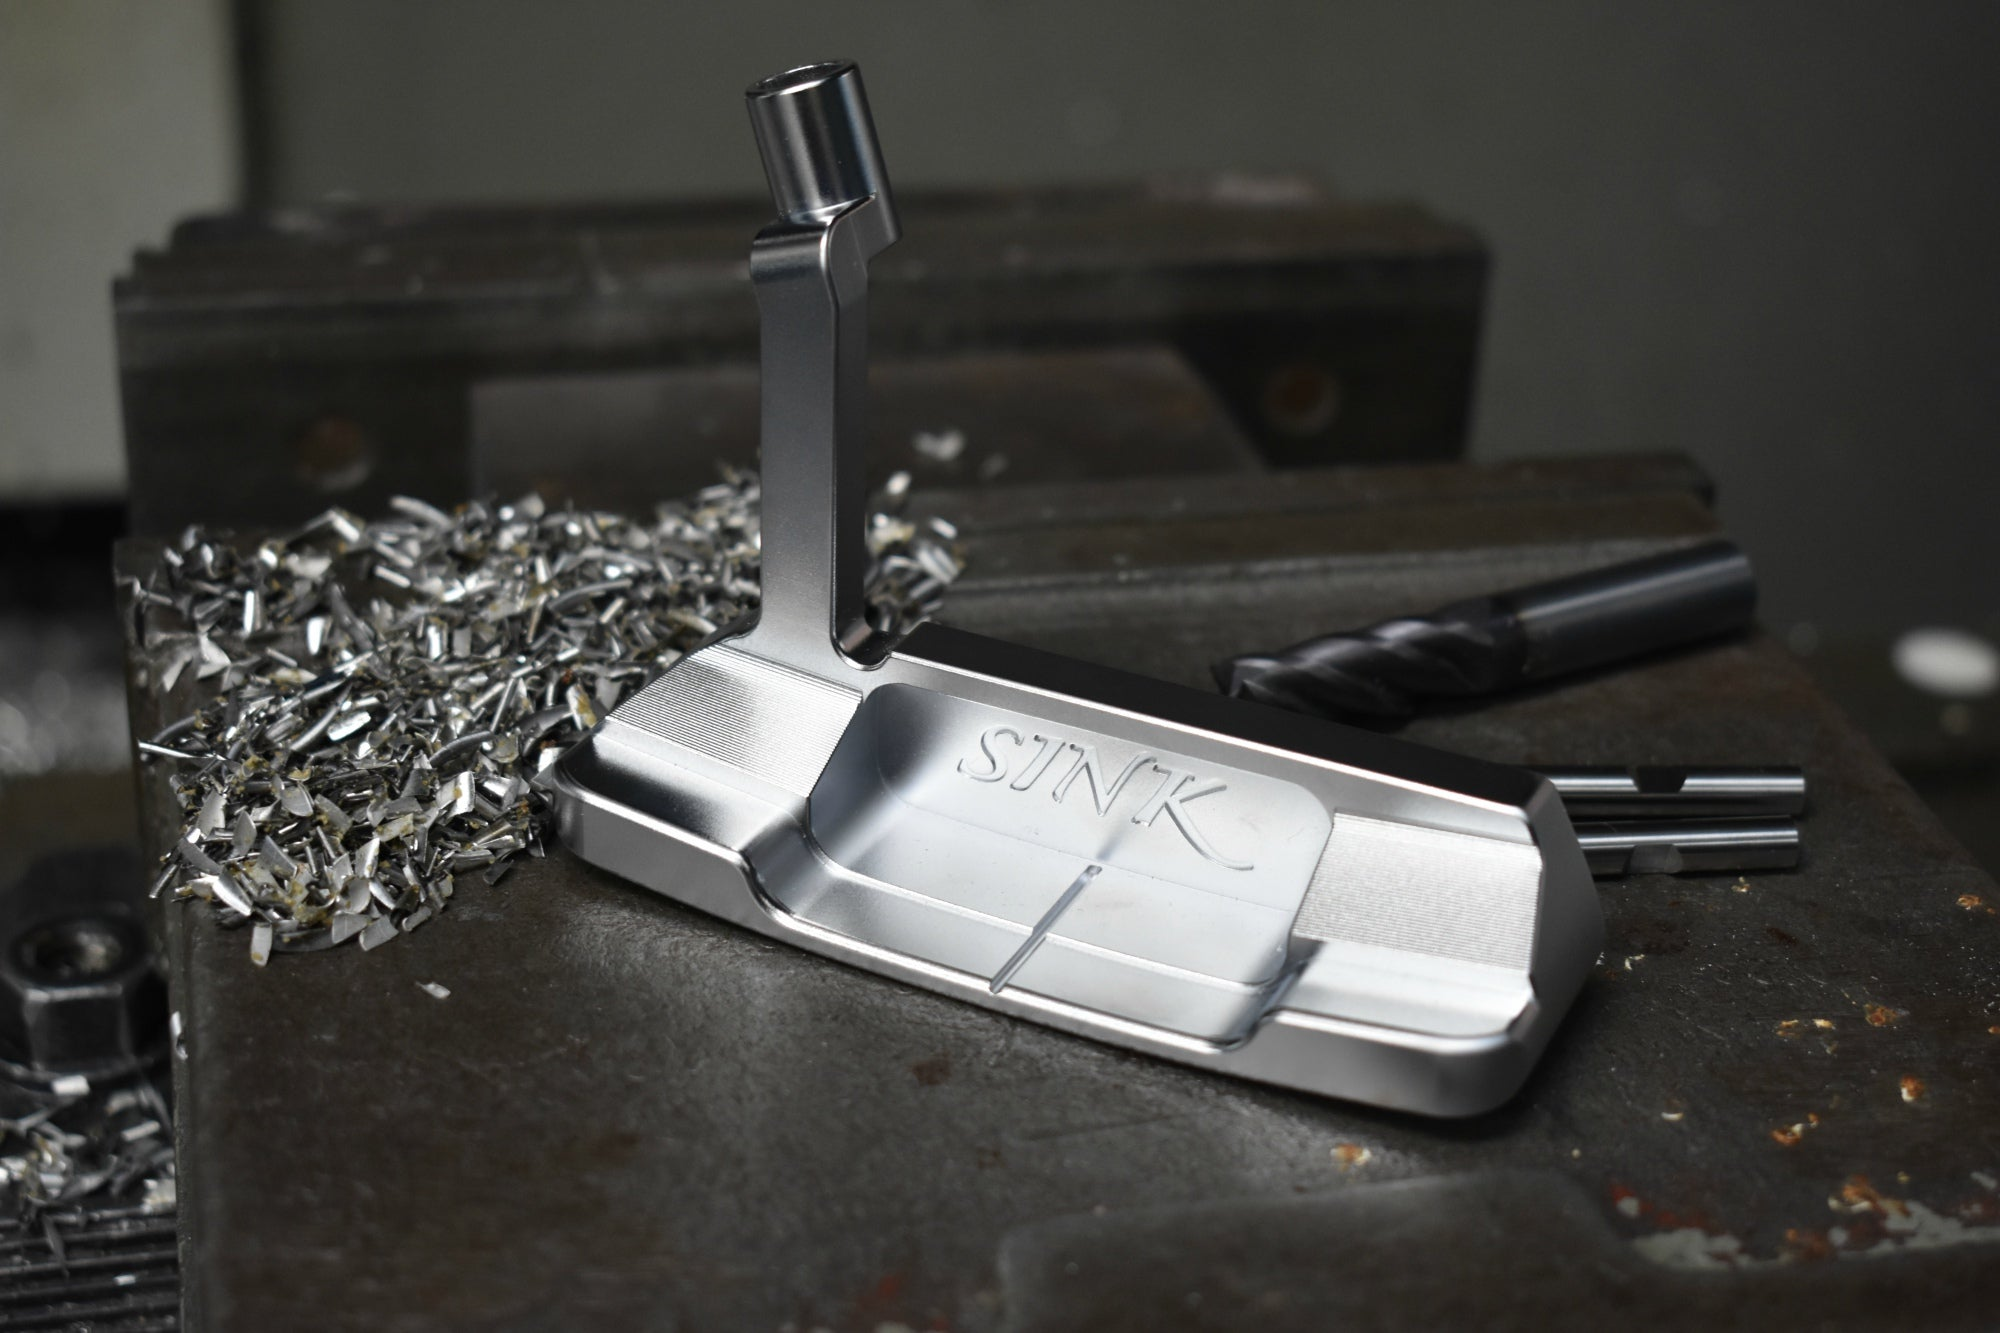 303 stainless steel fat blade - SINK GOLF